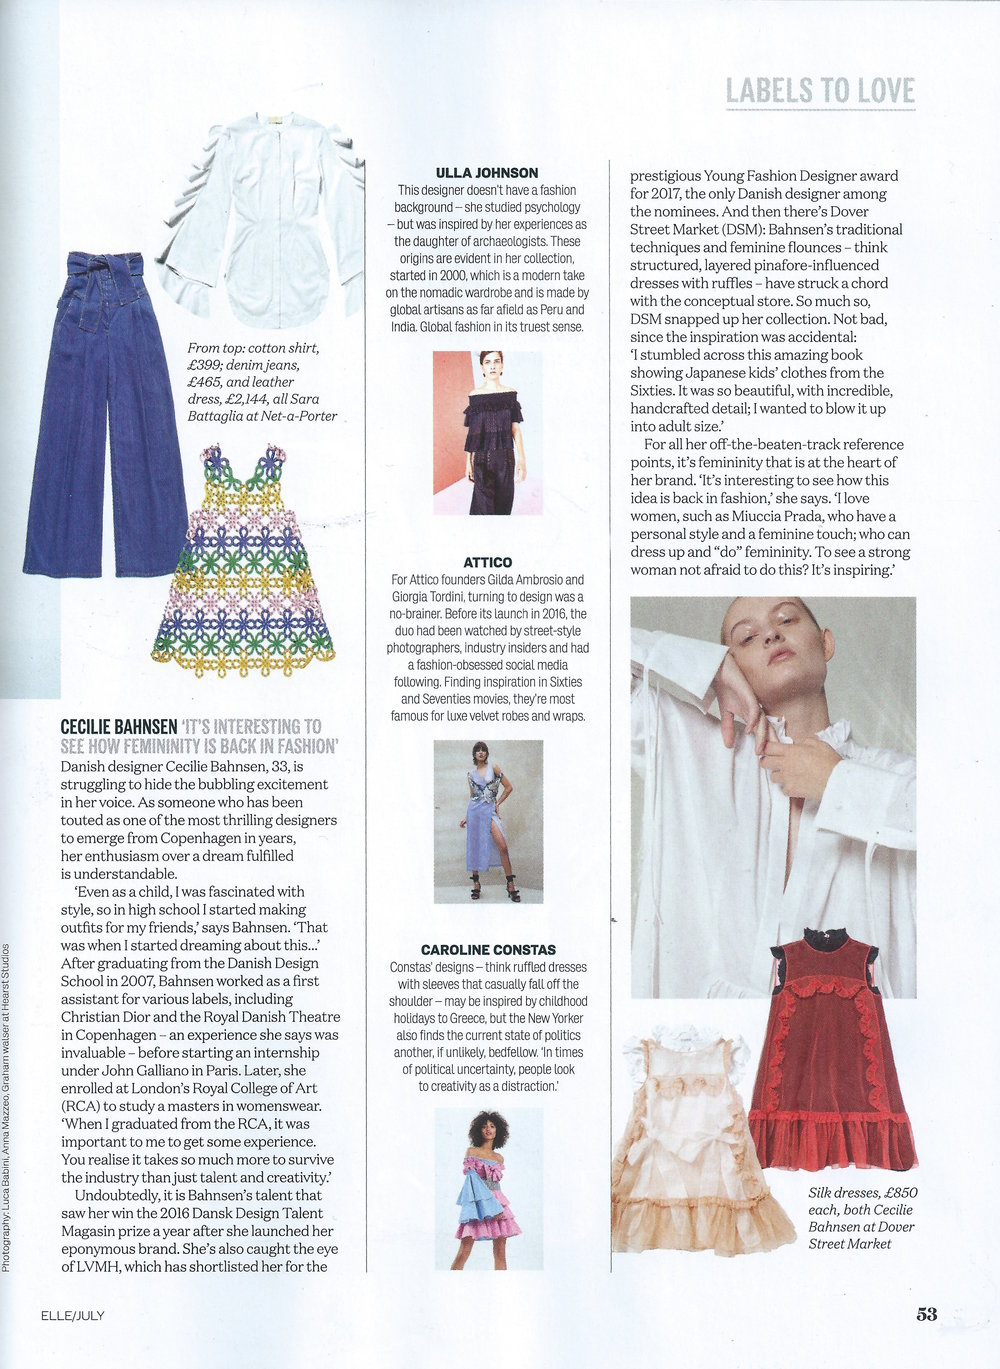 elle labels to love.jpeg